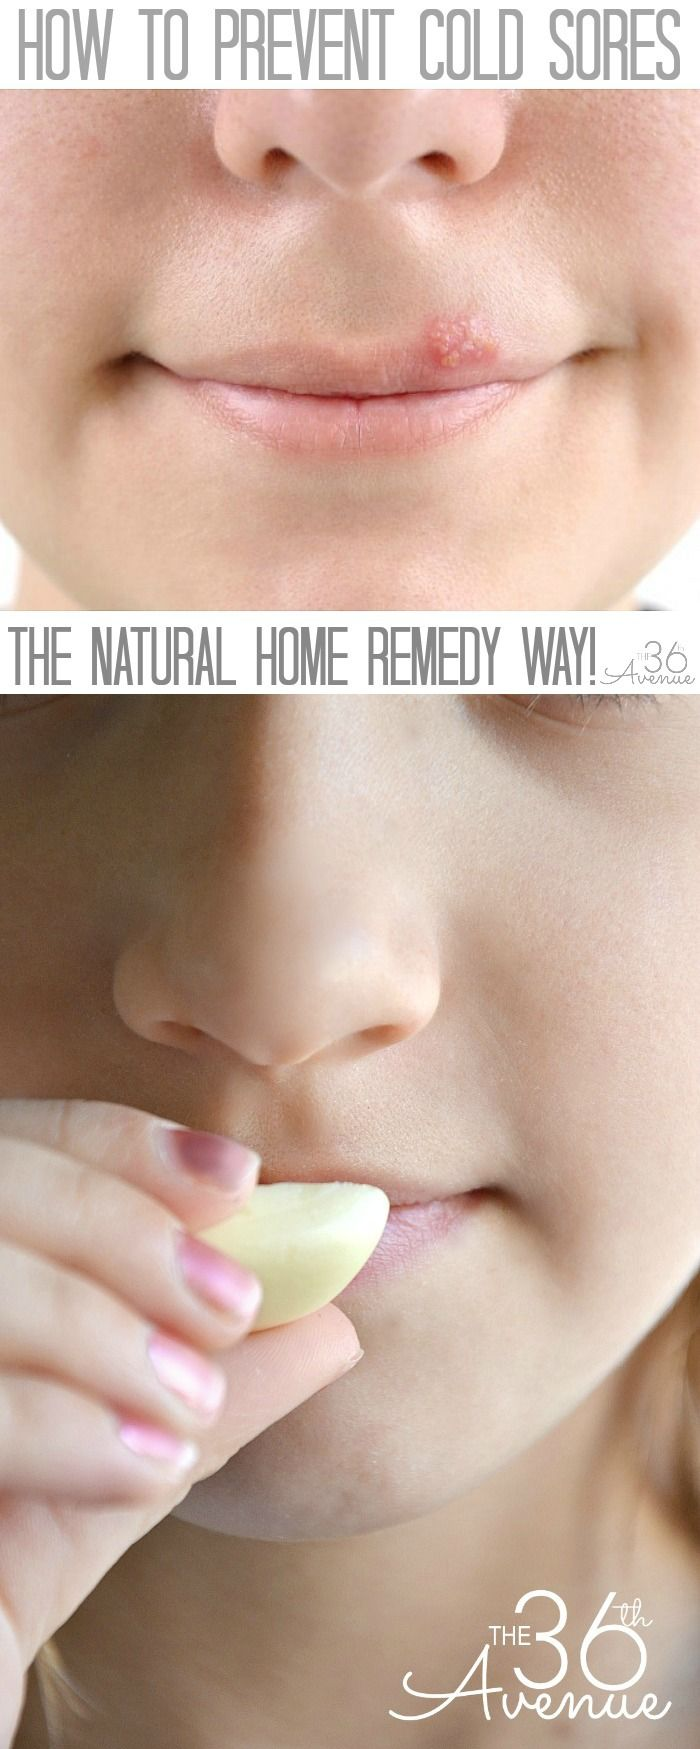 How to prevent cold sores. Home remedies for cold sores!